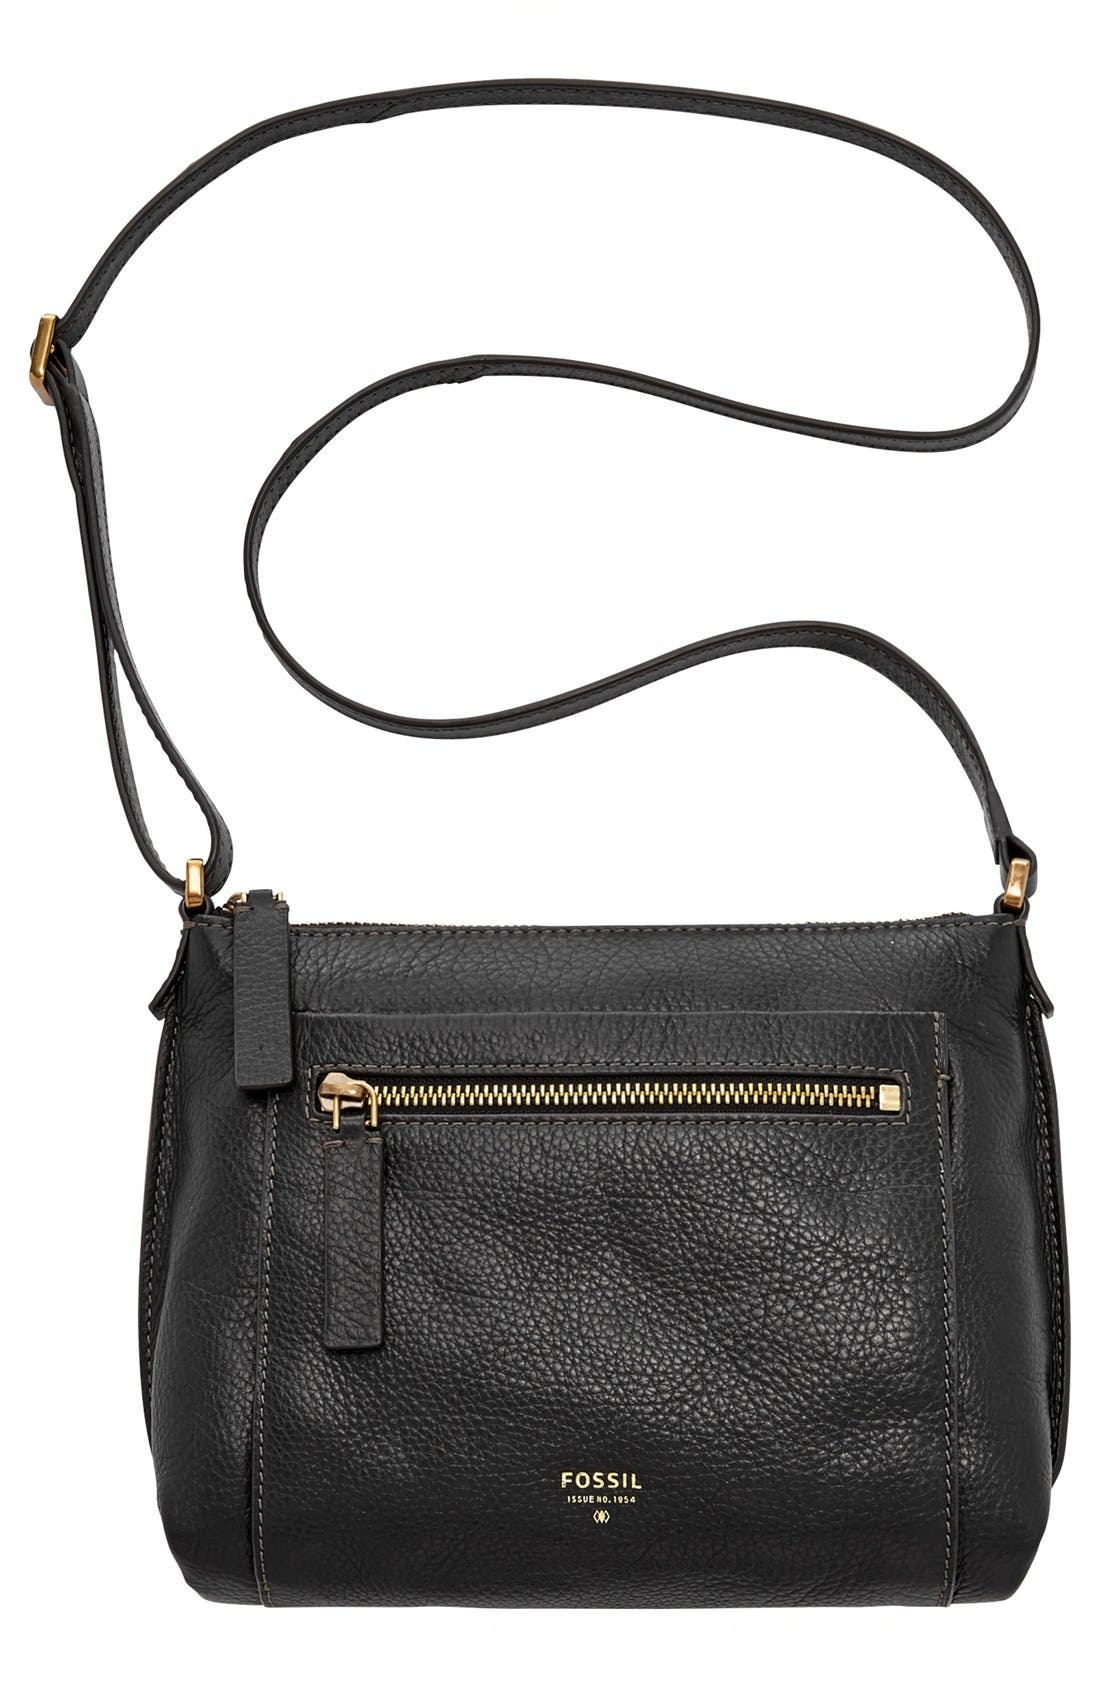 'Vickery' Leather Crossbody Bag,                             Alternate thumbnail 4, color,                             001